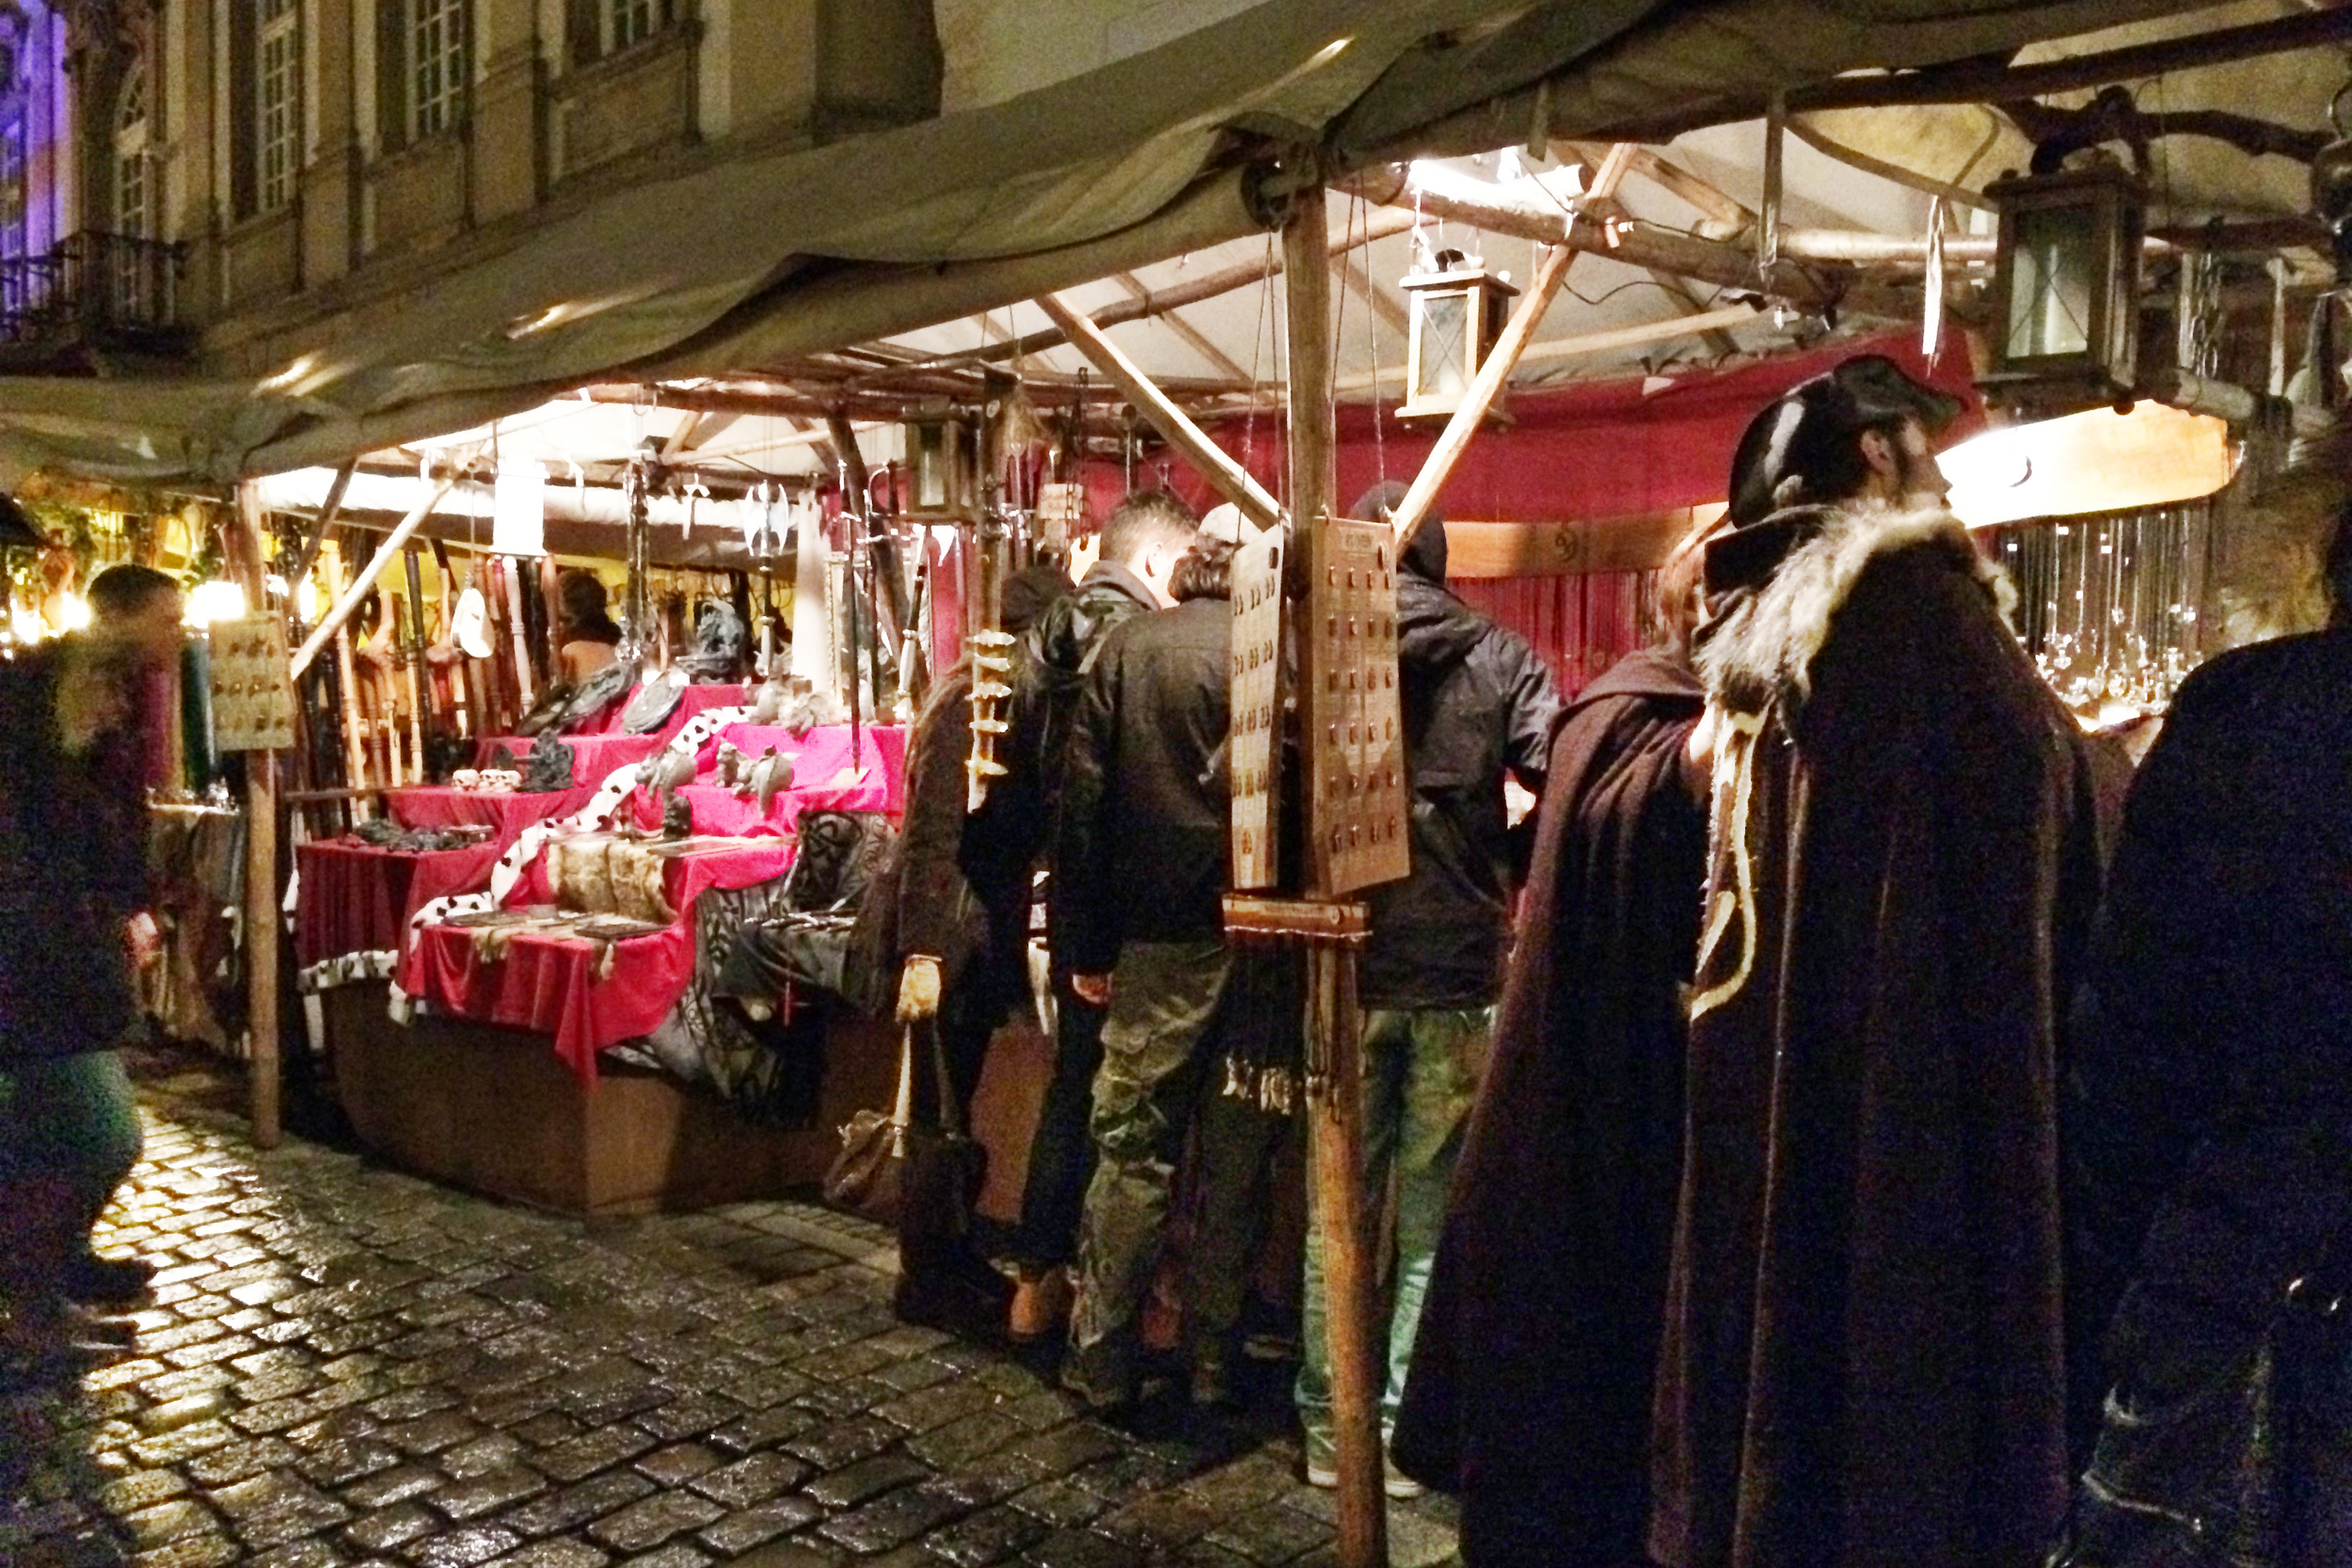 Esslingen is a medieval town, so the rustic streets go perfectly with the market theme.